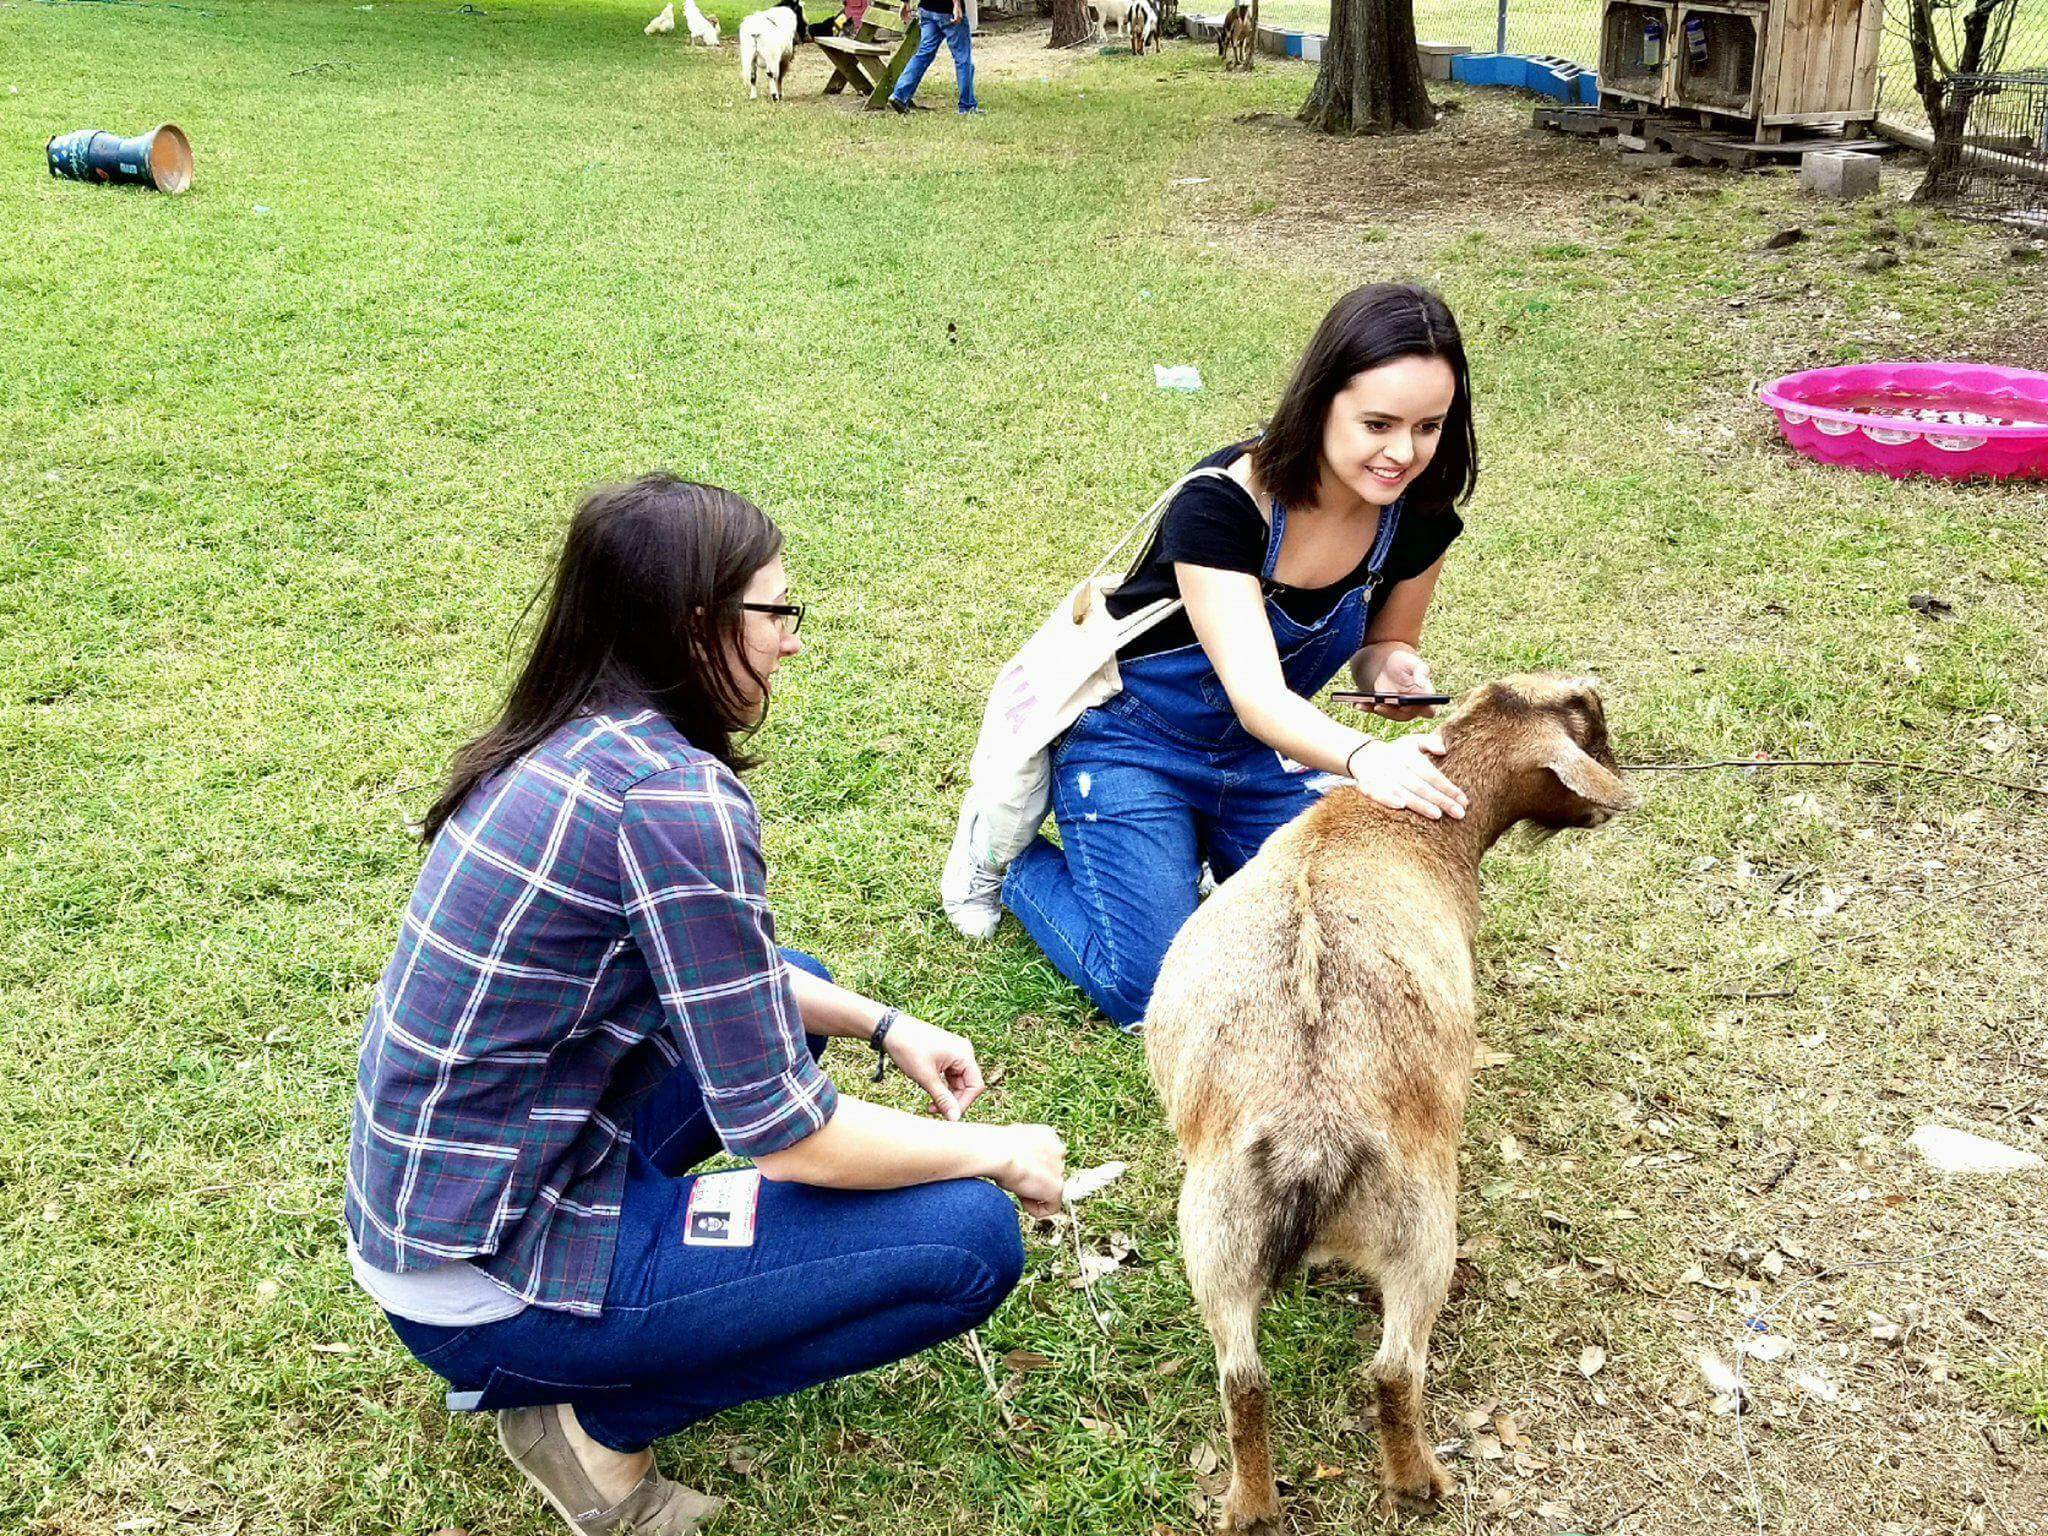 Erica Leigh and Katie Lugo introducing themselves to some wonderful kids — in this case, young goats.